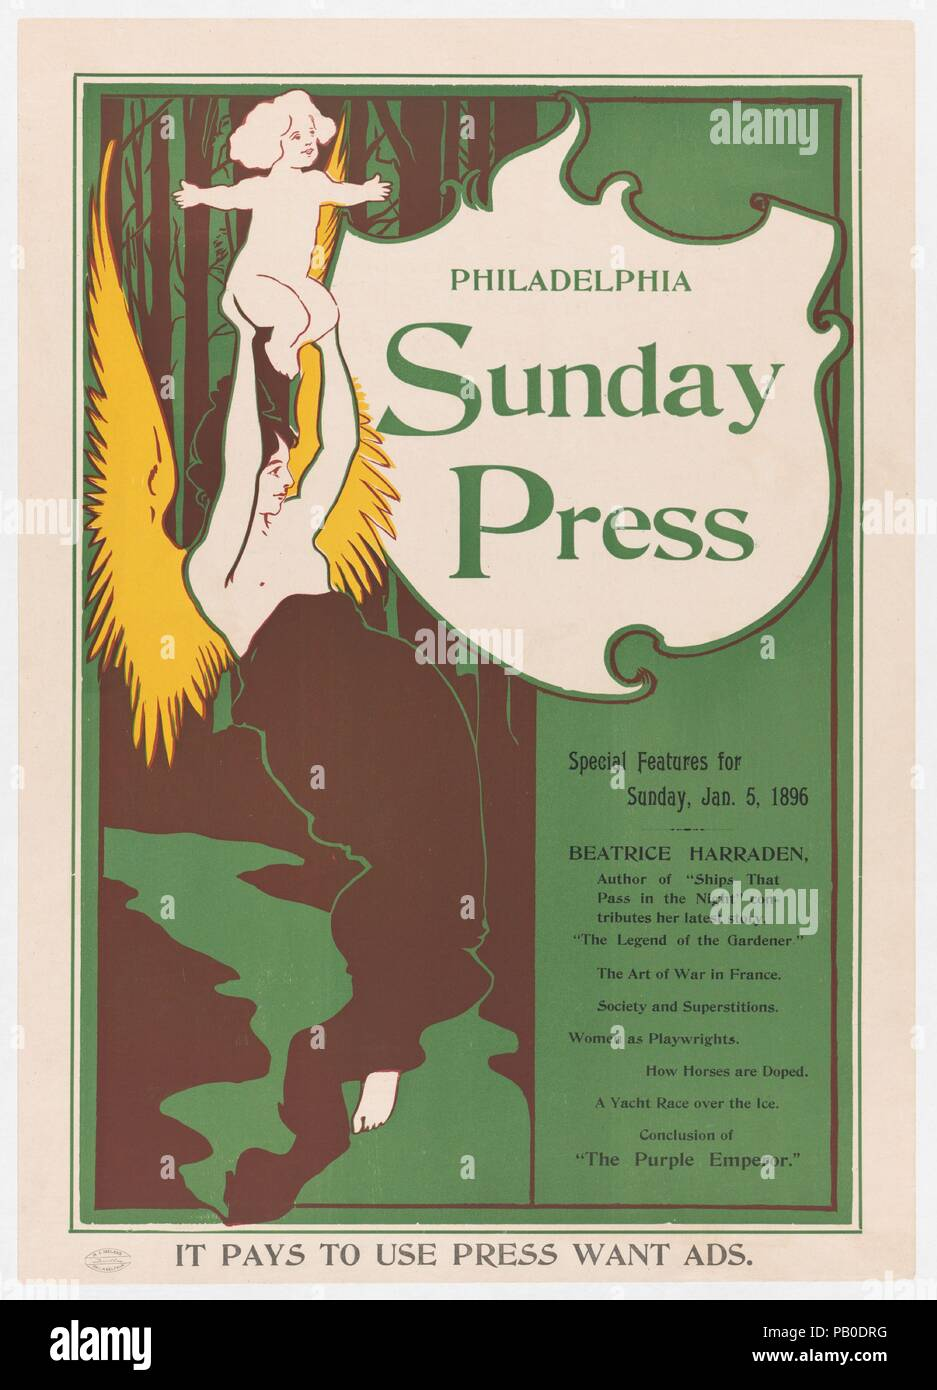 Advertisement for Philadelphia Sunday Press: Jan. 5, 1896. Artist: George Reiter Brill (American, Pittsburgh, Pennsylvania 1867-1918 Florida). Dimensions: Plate: 20 5/8 × 13 5/8 in. (52.4 × 34.6 cm)  Sheet: 21 7/8 × 15 1/2 in. (55.6 × 39.4 cm). Date: 1896. Museum: Metropolitan Museum of Art, New York, USA. - Stock Image